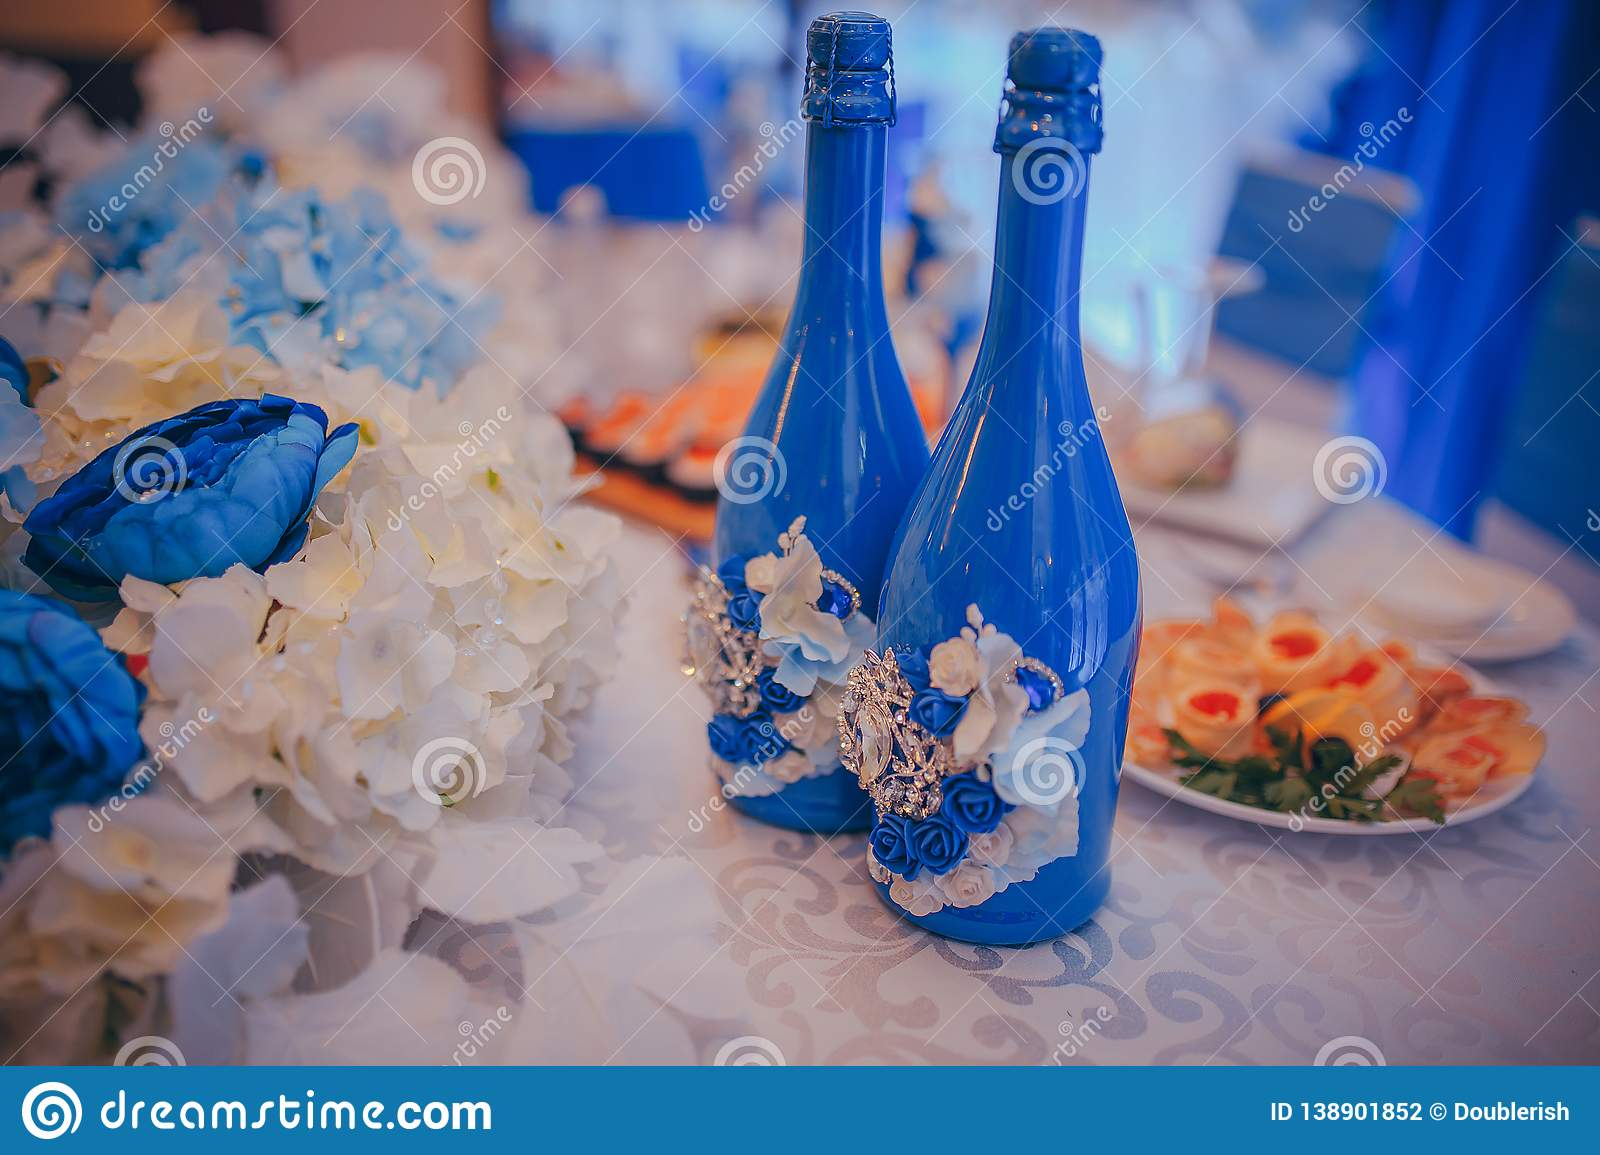 Wedding Decorations Blue Champagne Bottles Stock Photo - Image of groom,  setting: 138901852